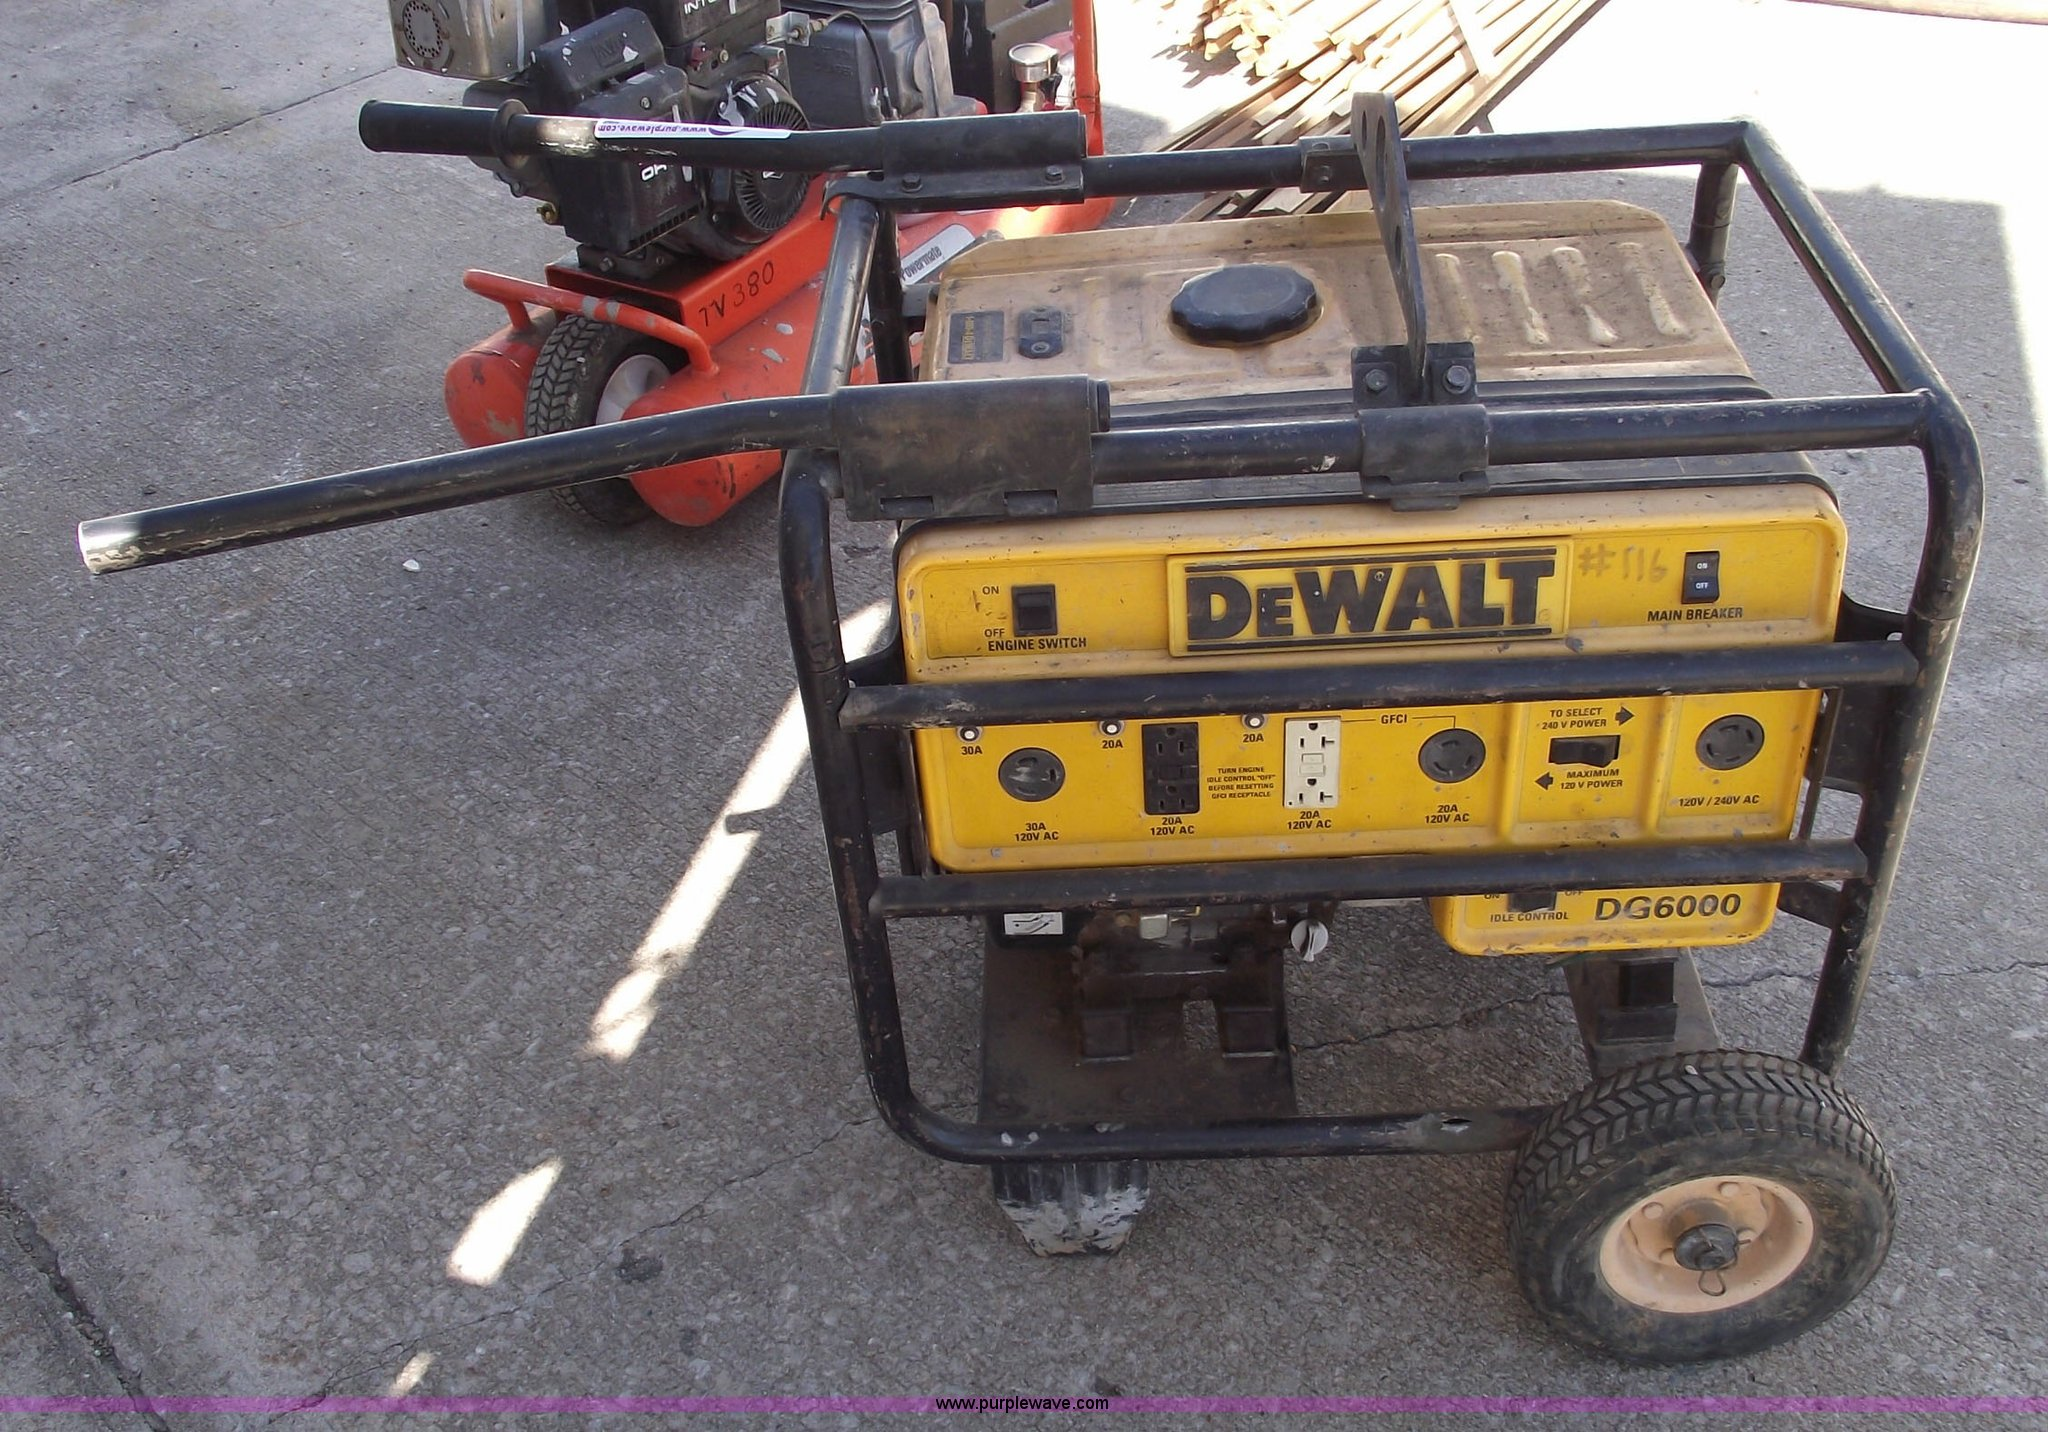 dewalt dg6000 generator item a9408 sold september 15 co rh purplewave com dewalt generator dg6000 parts dewalt generator dg6000 replacement parts